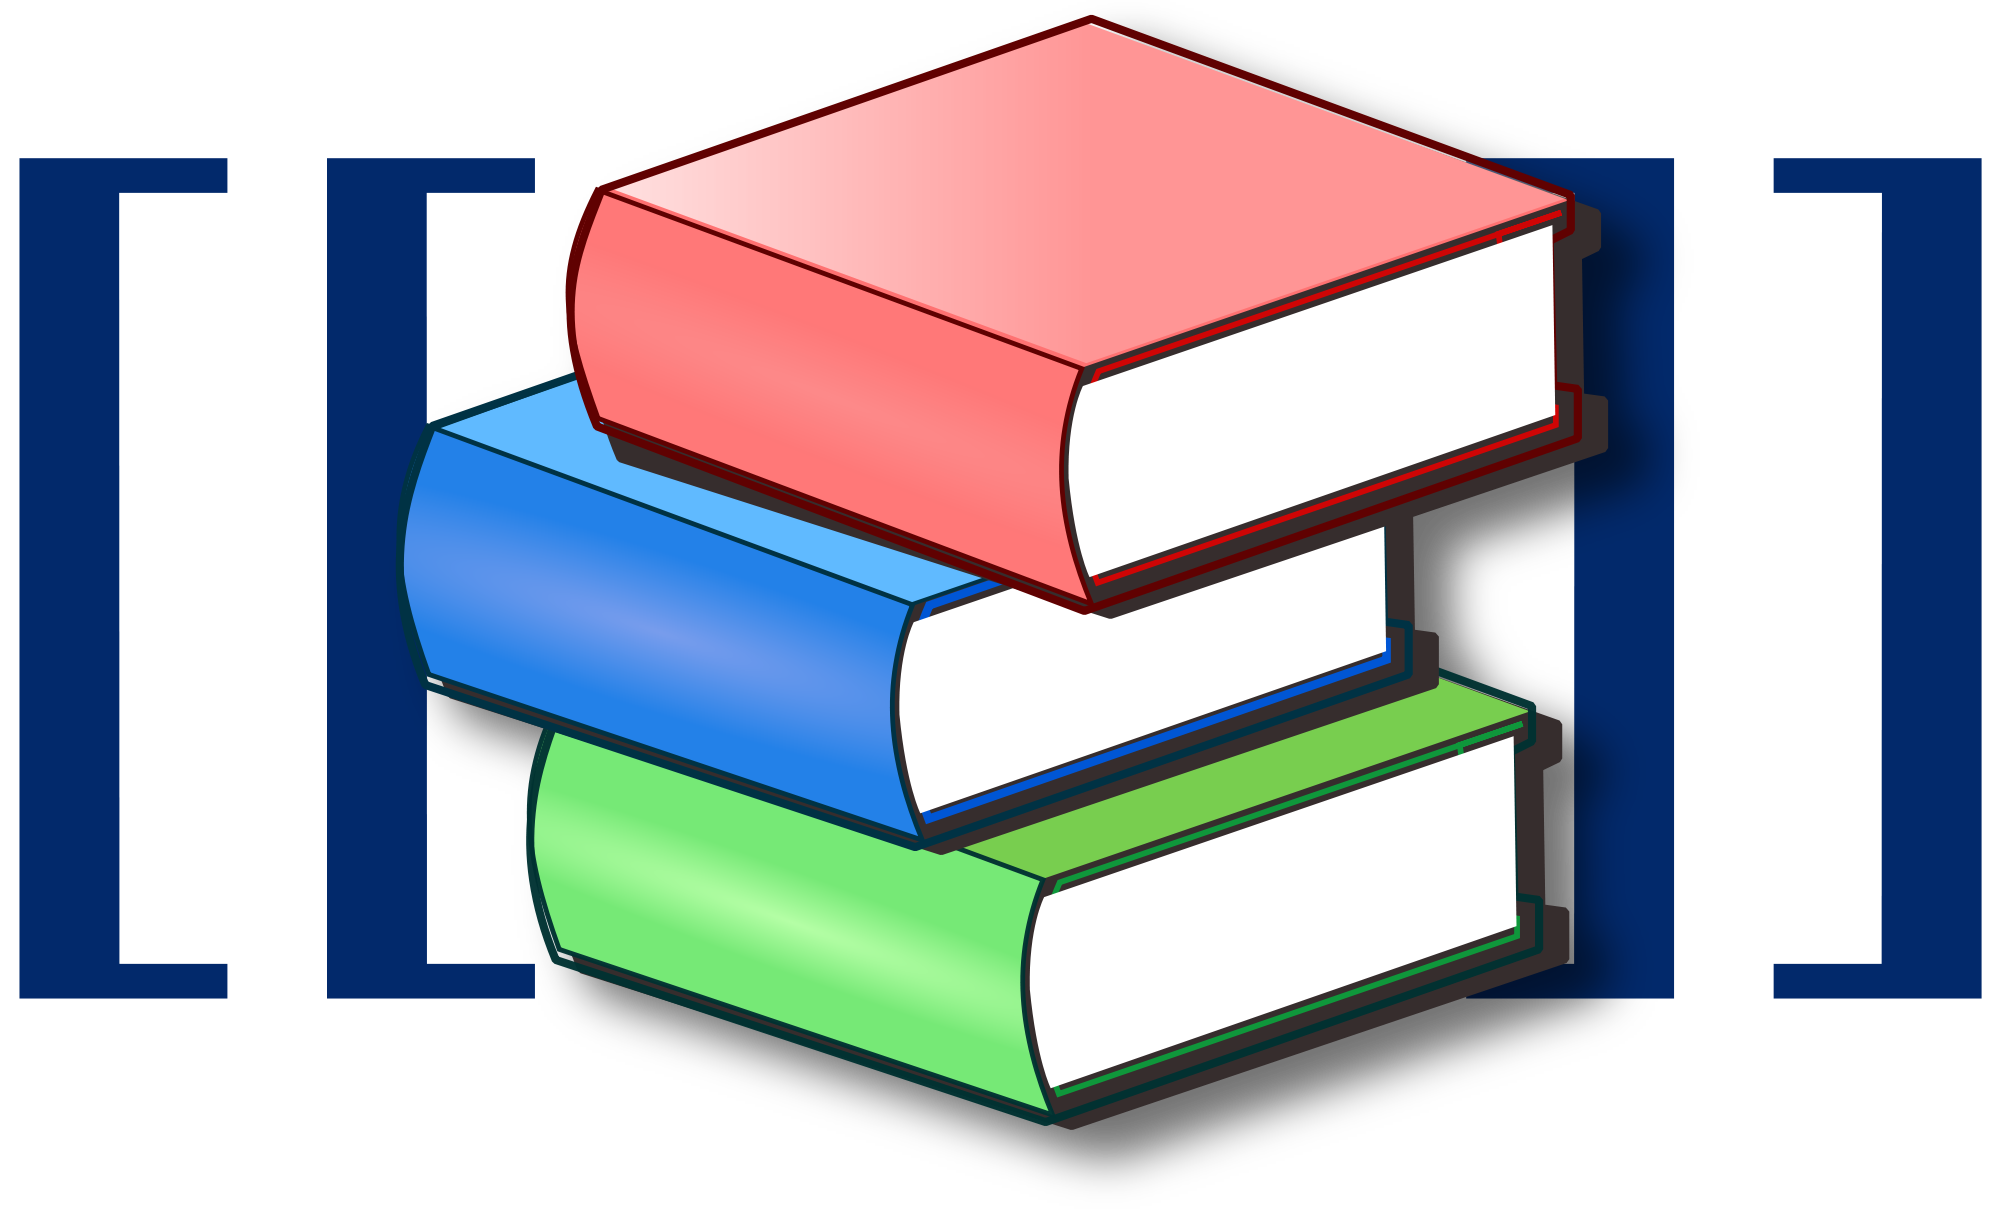 Download Library clipart icon, Library icon Transparent FREE for ...